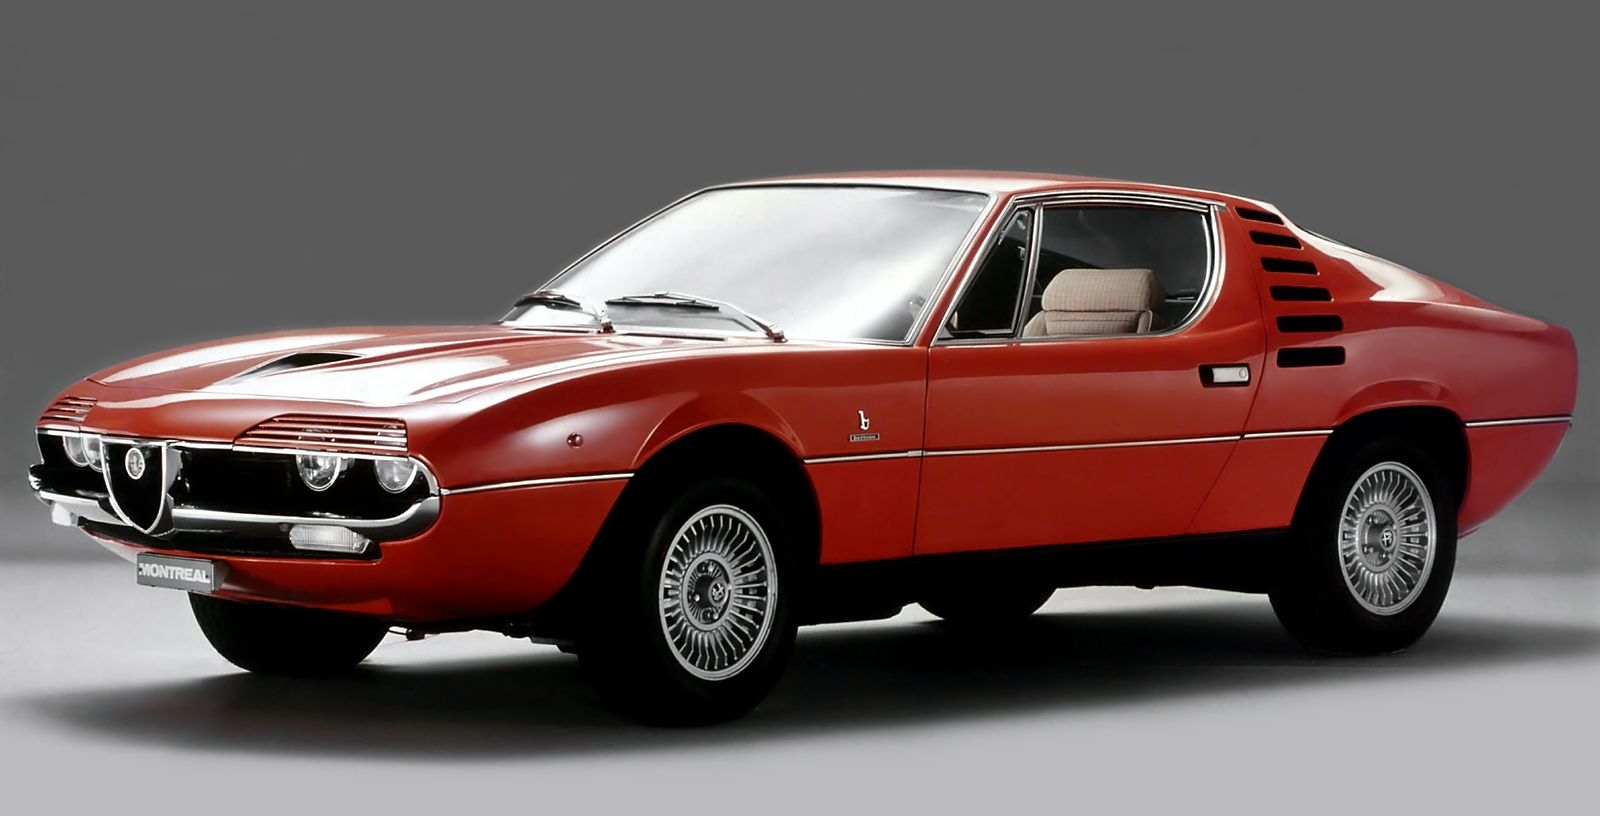 alfa romeo montreal used daewoo cars. Black Bedroom Furniture Sets. Home Design Ideas